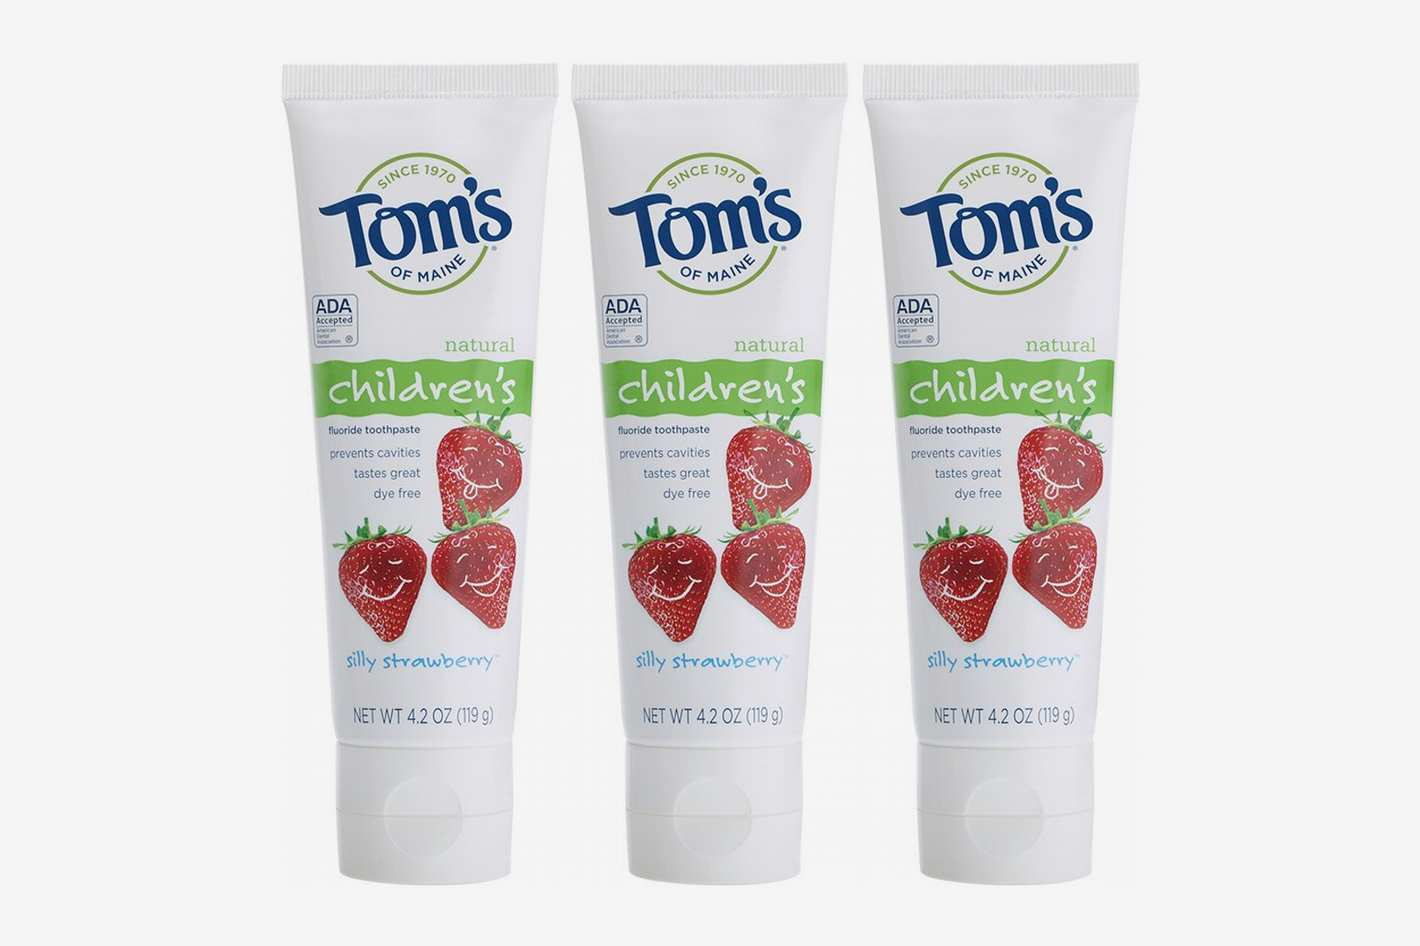 Tom's of Maine Children's Toothpaste, Silly Strawberry (Pack of 3)